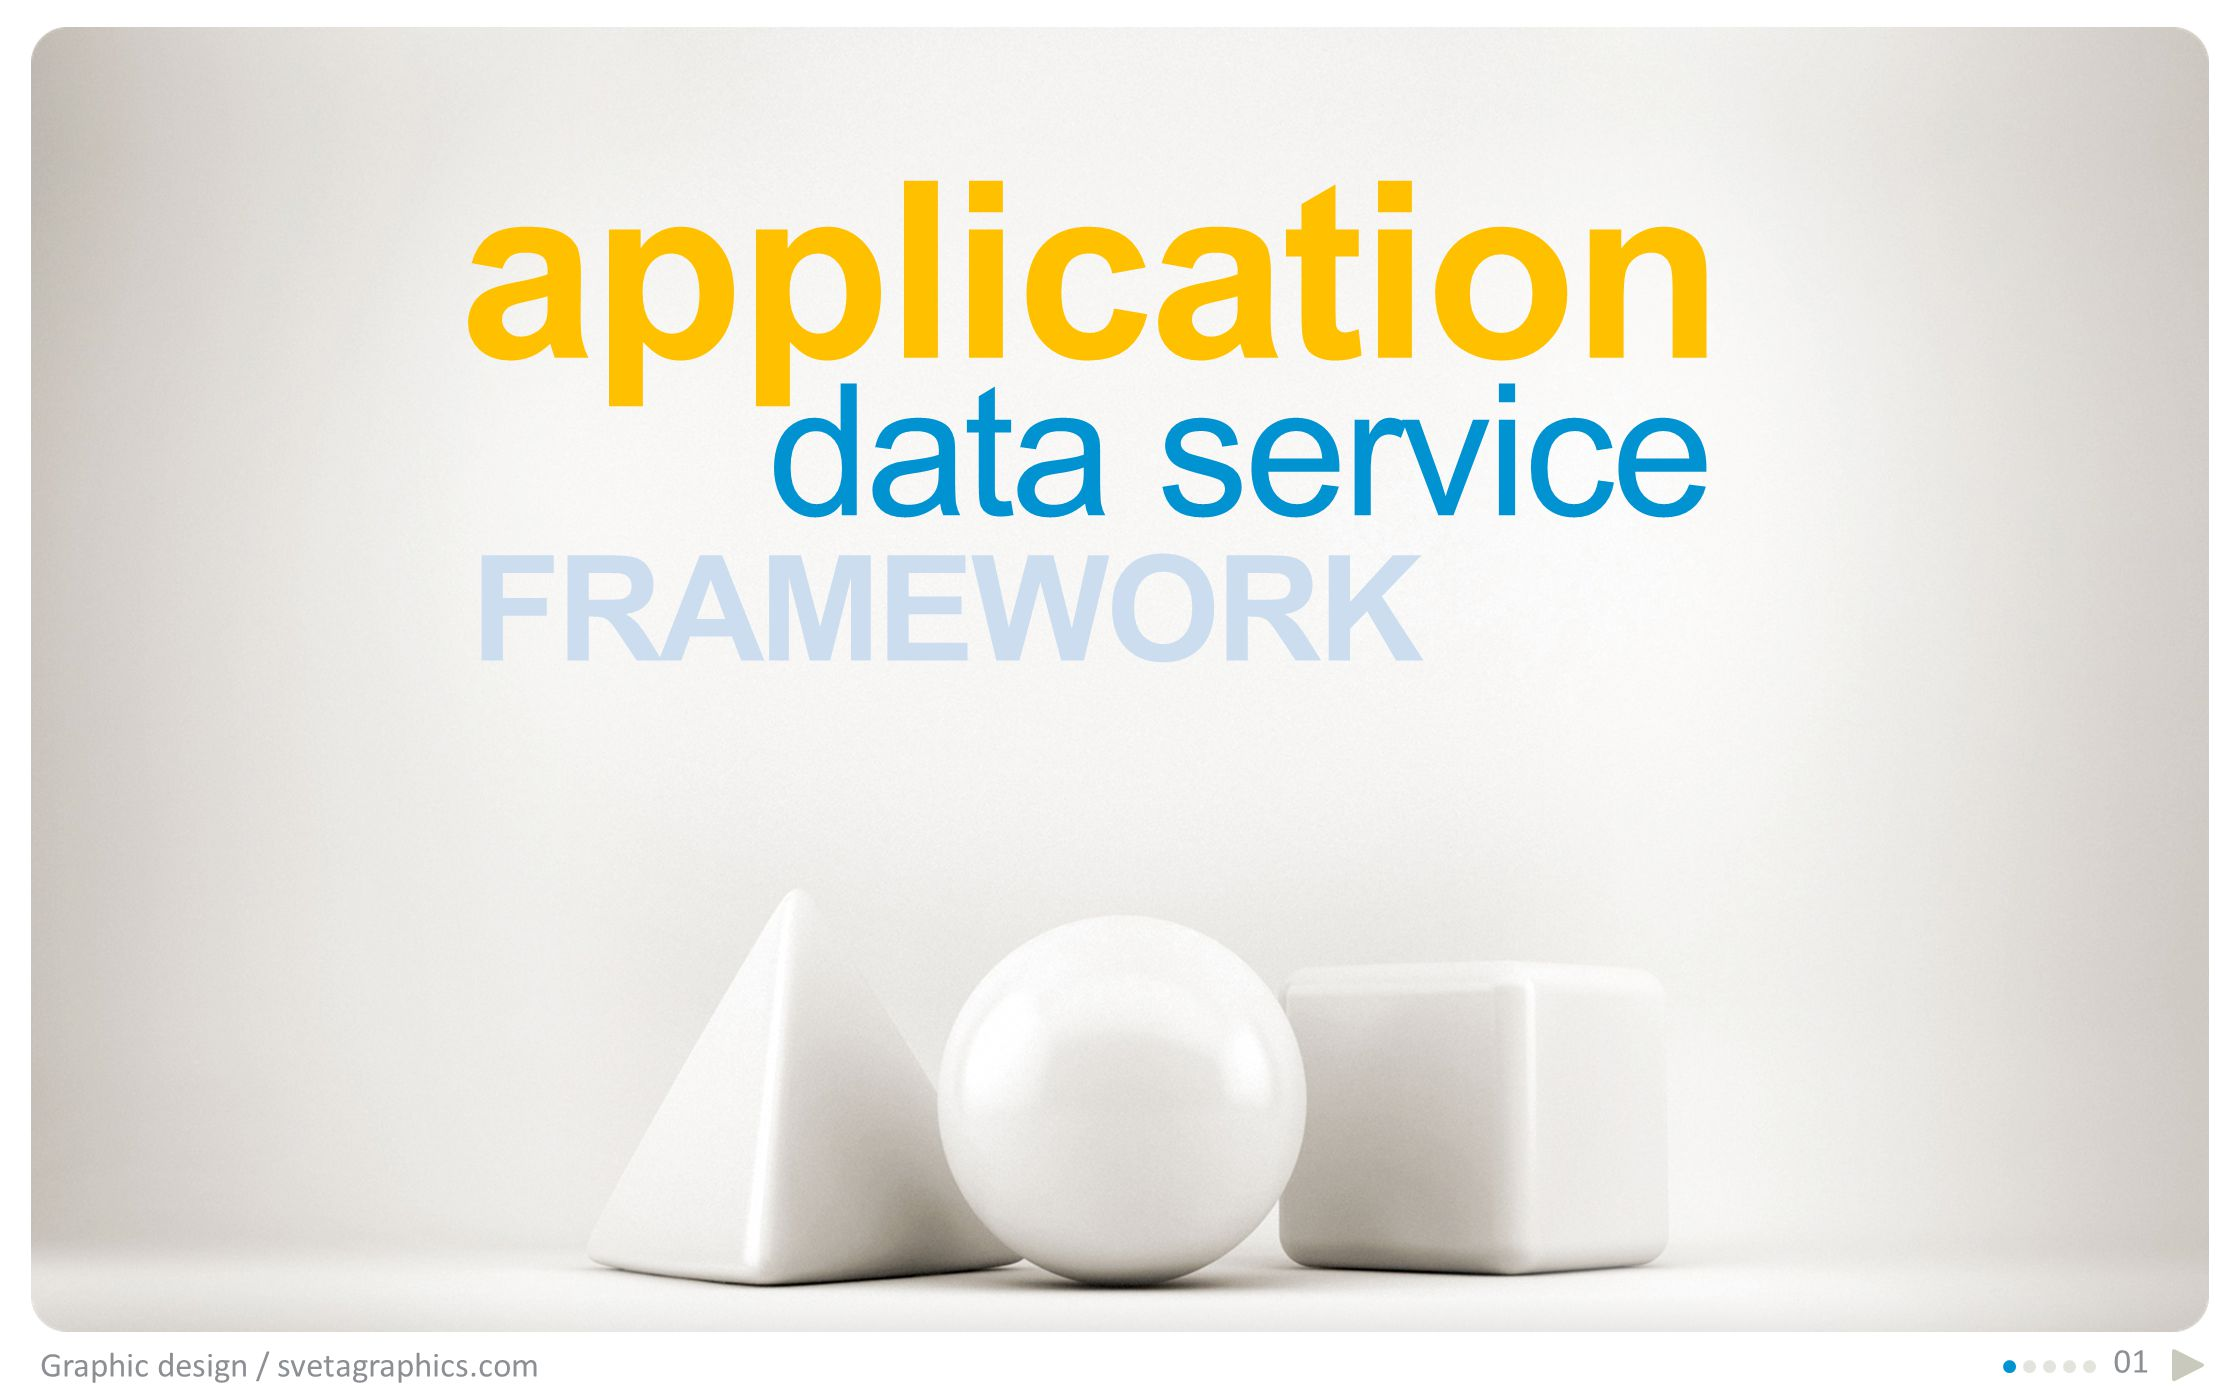 application Graphic design / svetagraphics.com 01 FRAMEWORK data service